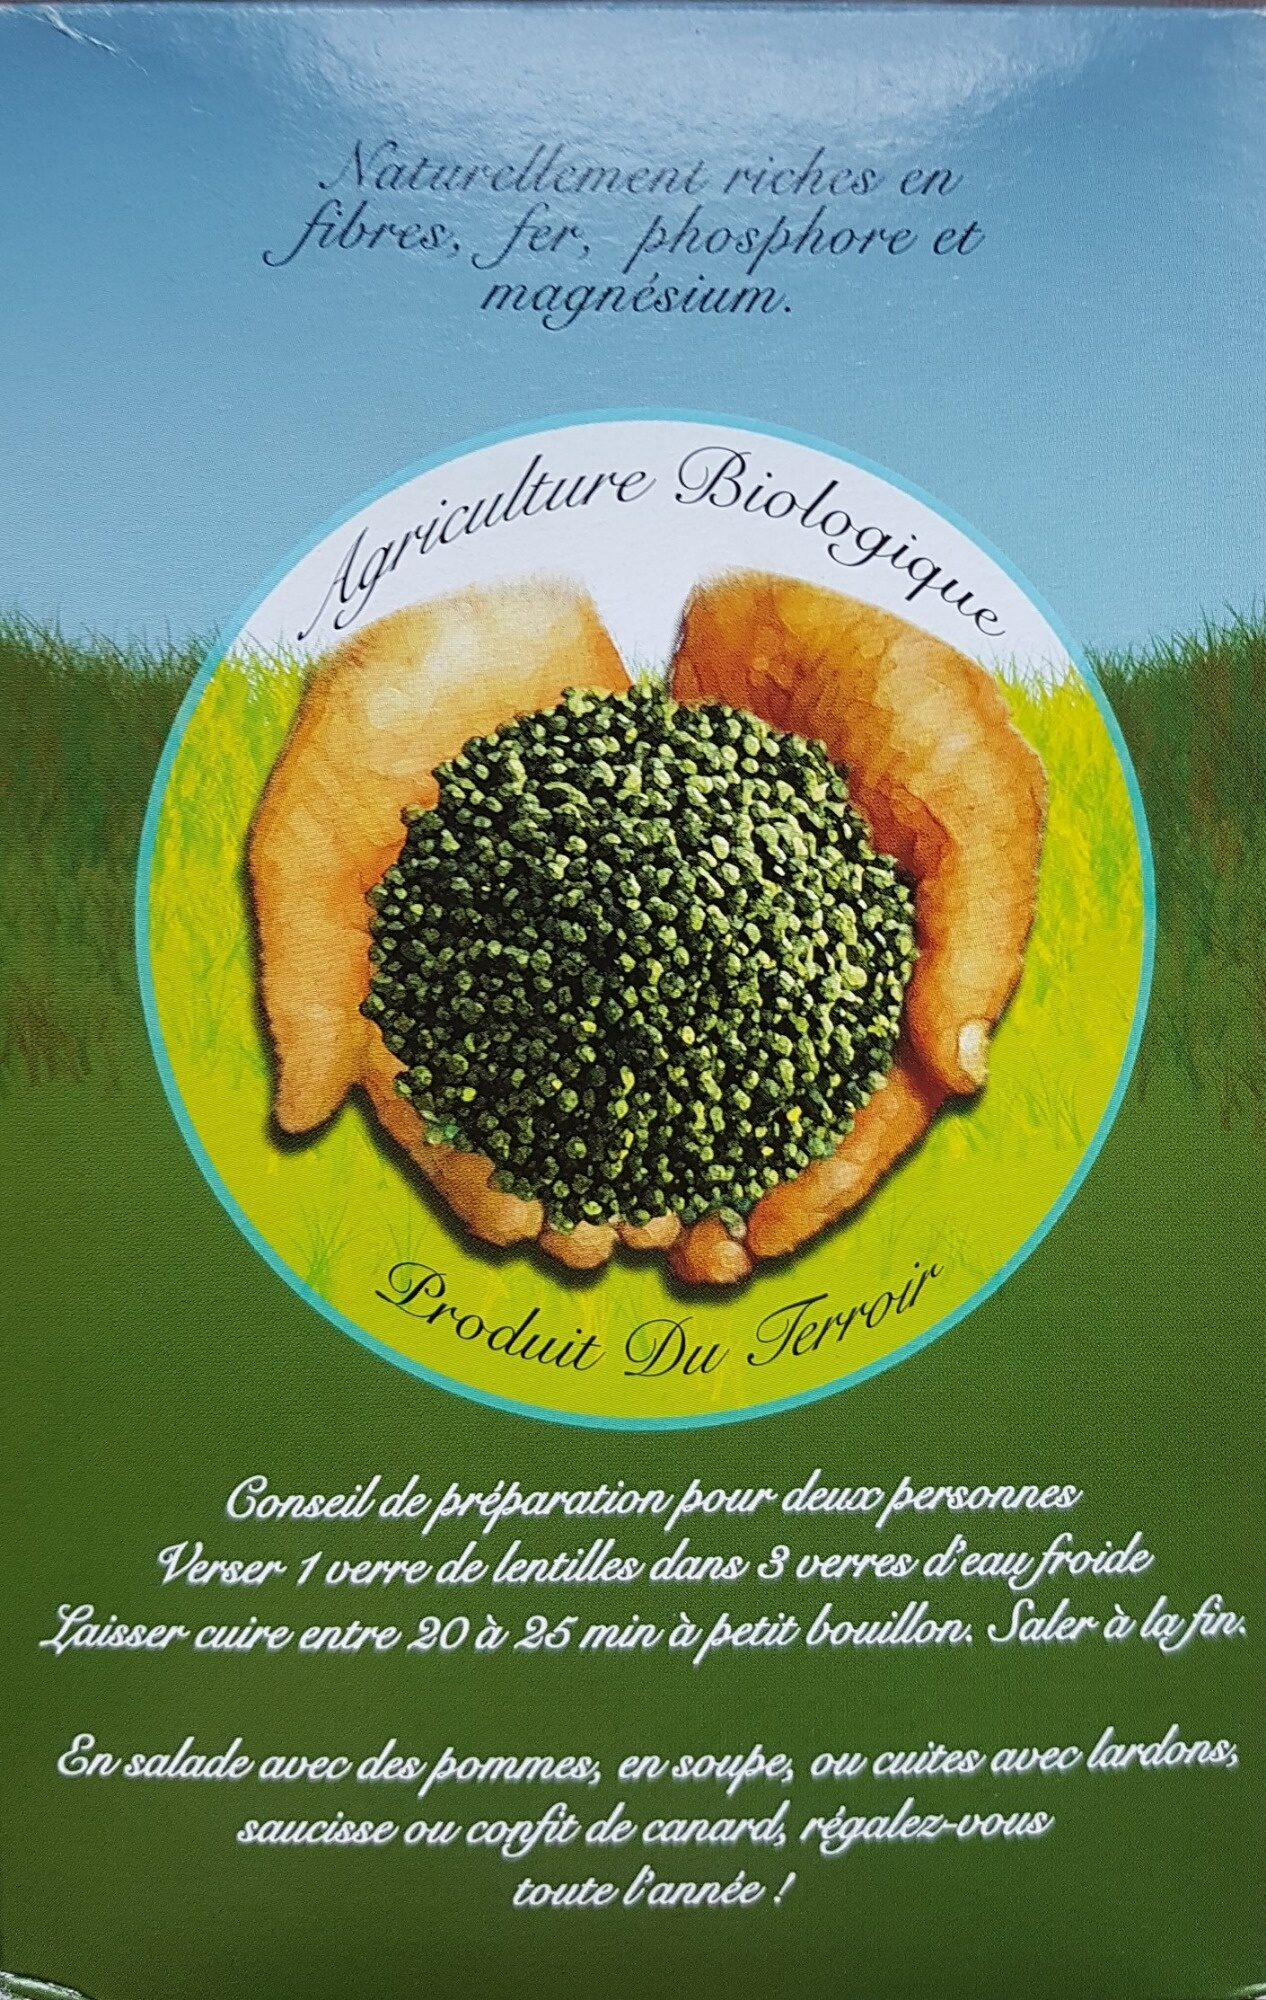 Lentilles vertes du gers - Ingredients